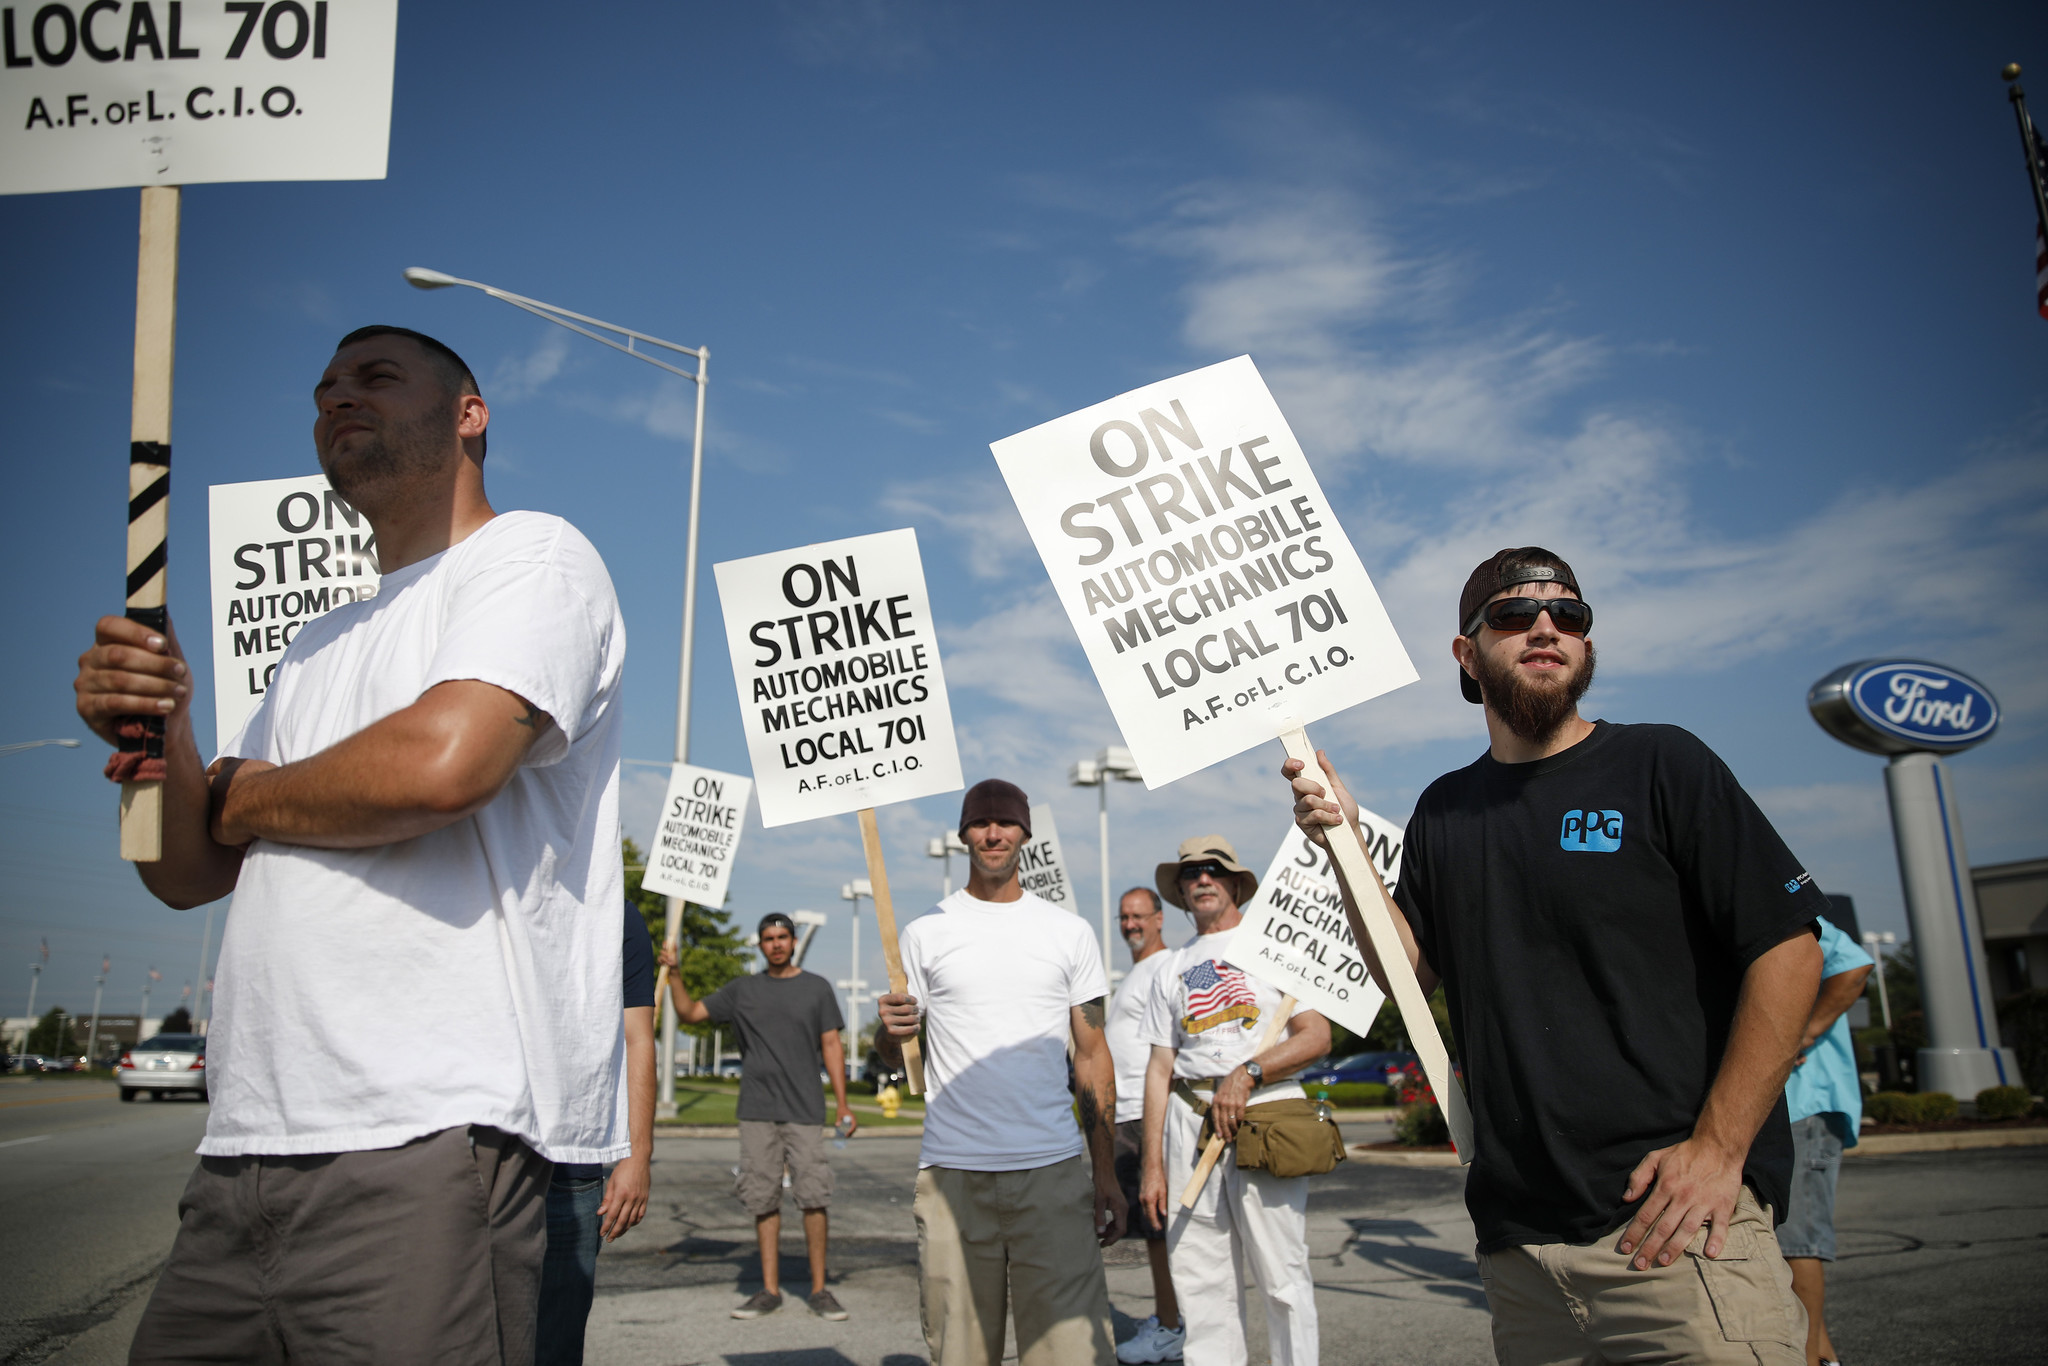 Striking mechanics return to bargaining table with Chicago area